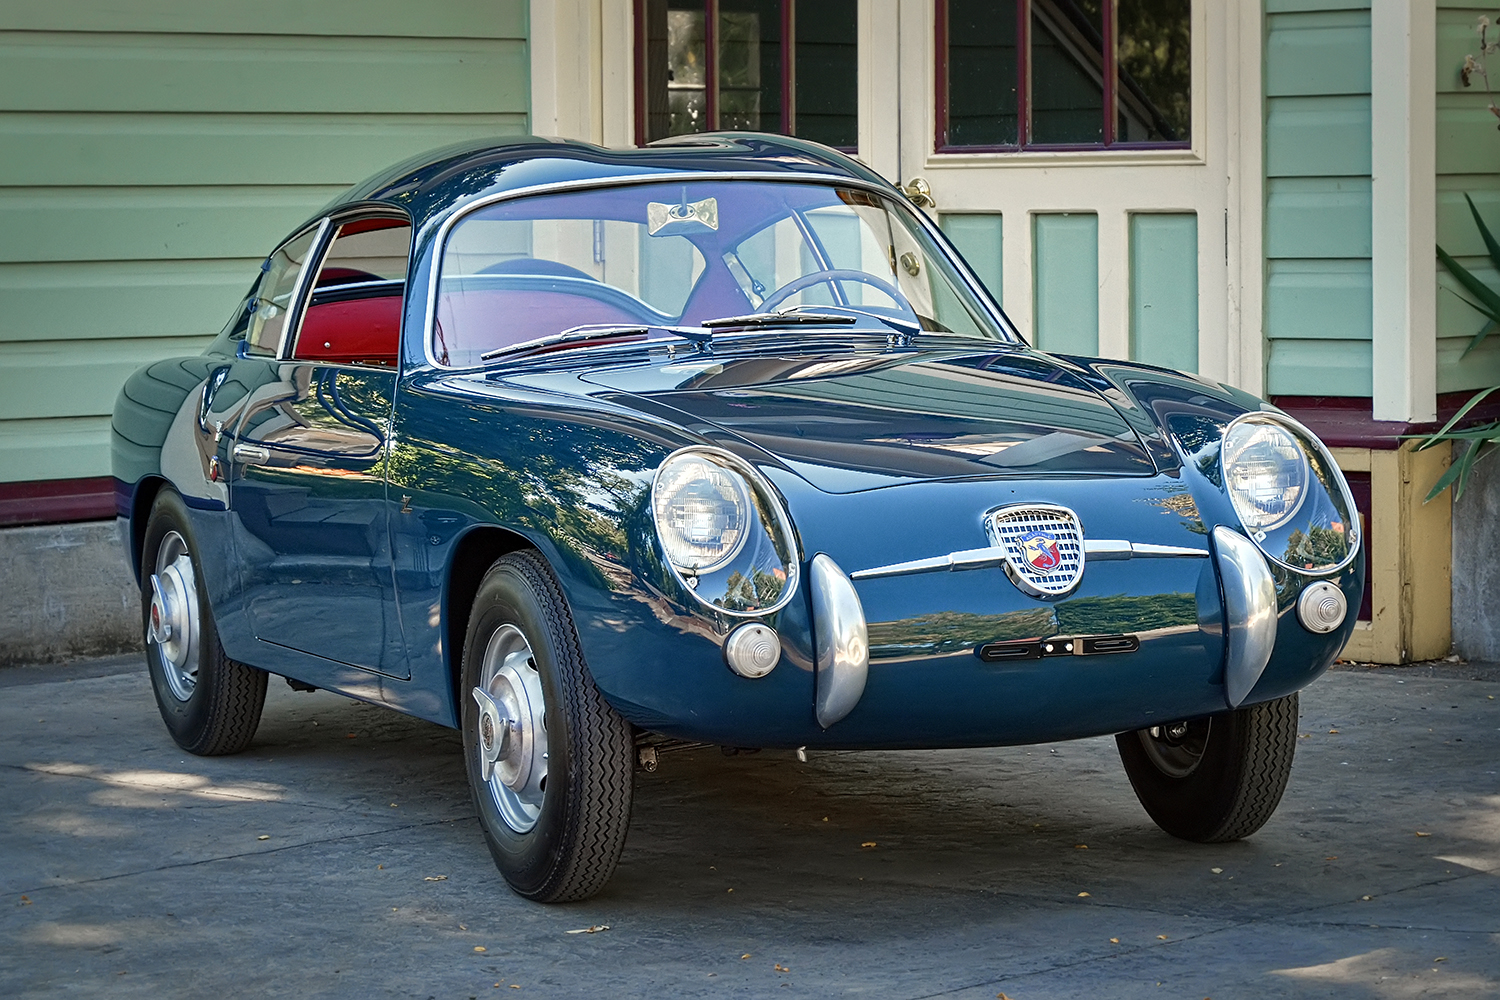 Restored 1958 Fiat Abarth 750 Zagato | Sports Car Shop